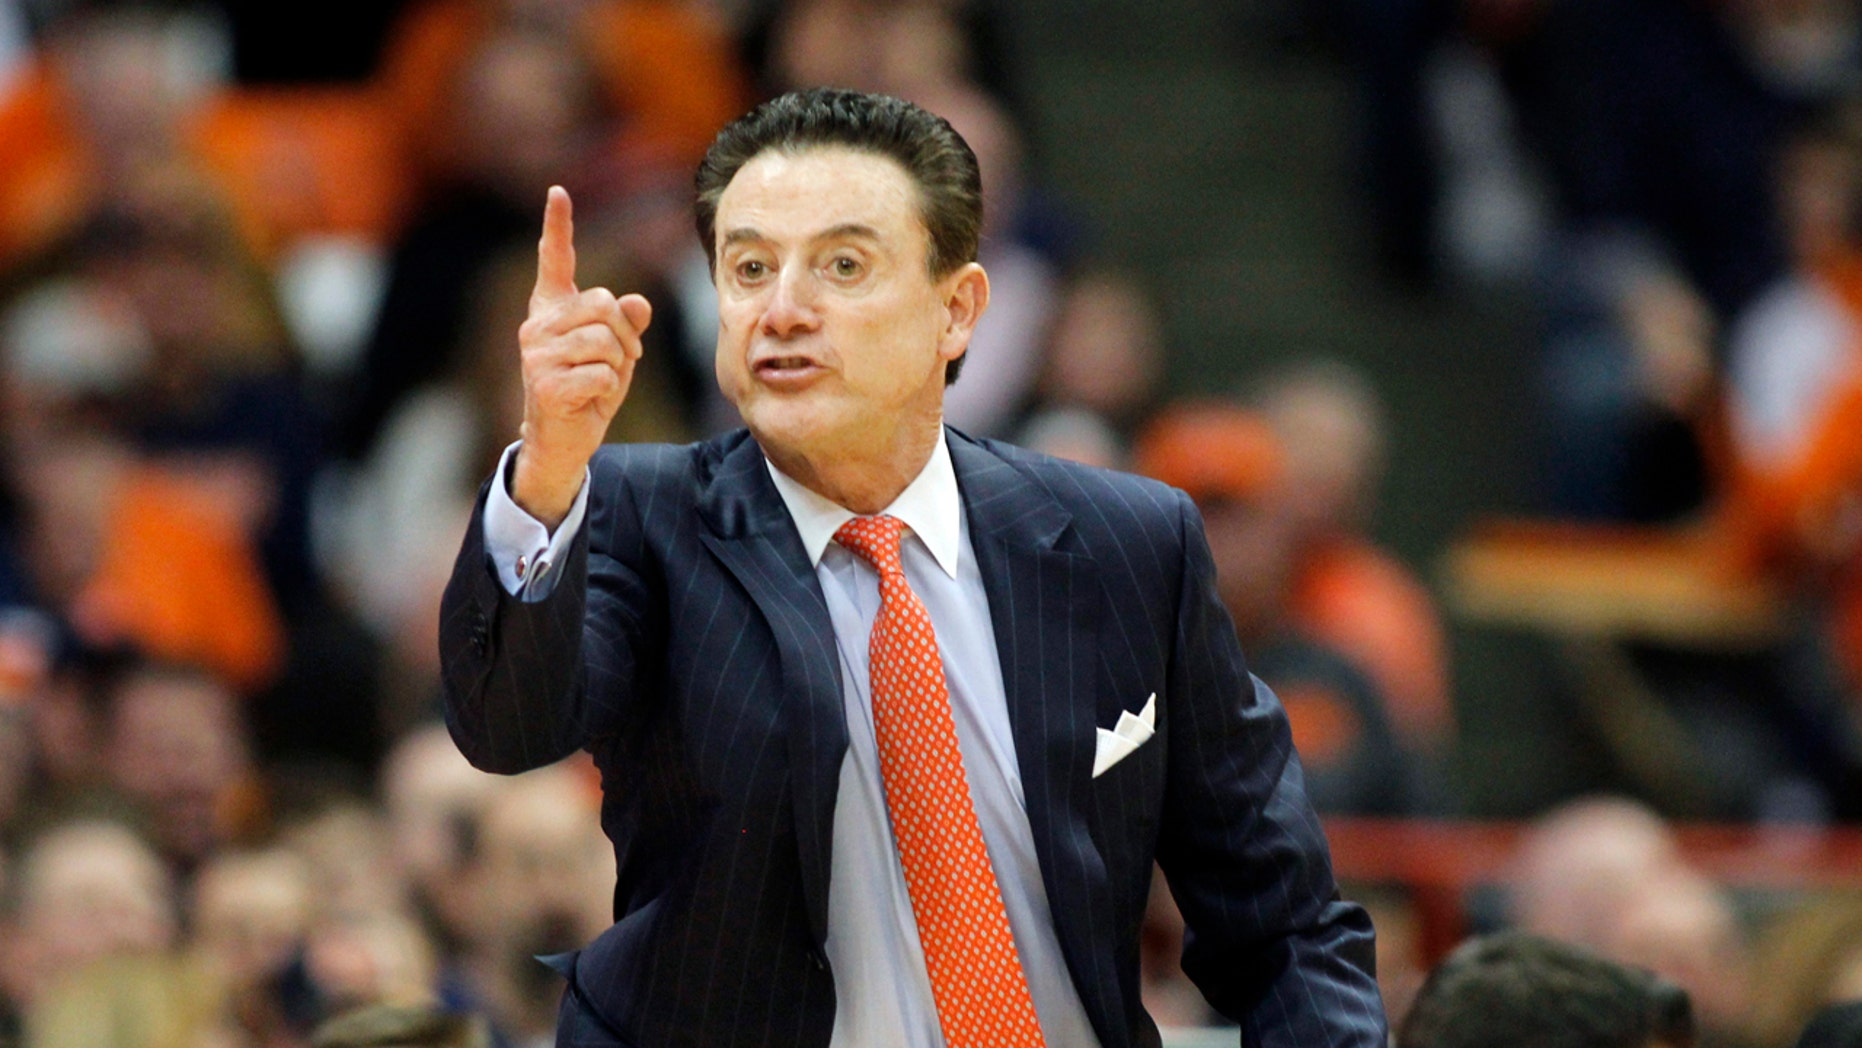 Louisville head coach Rick Pitino yells instructions to his players during an NCAA college basketball game against Syracuse on Feb. 13, 2017